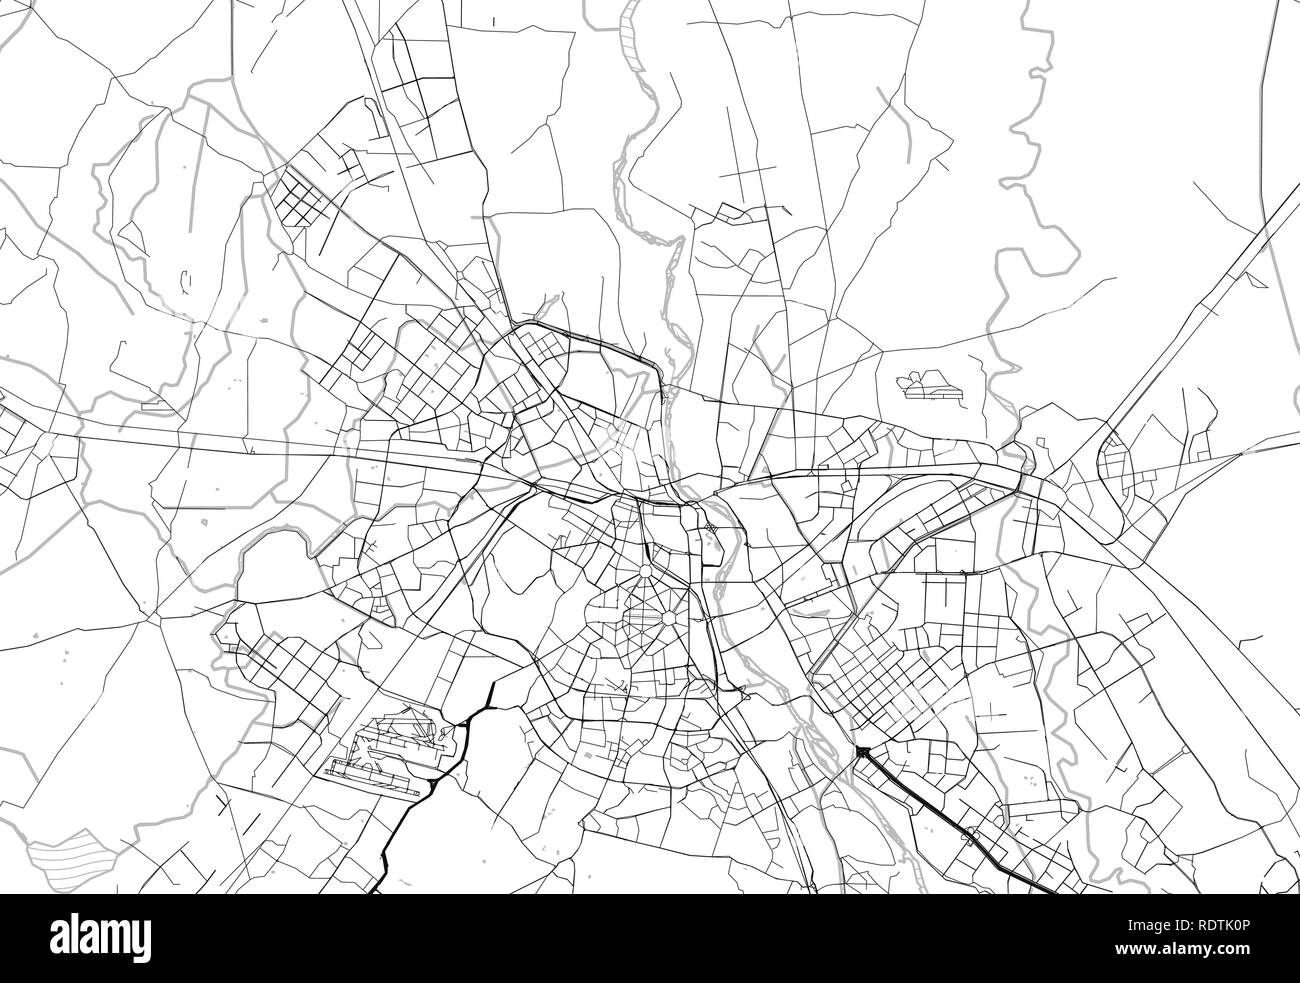 India Map Black and White Stock Photos & Images - Alamy